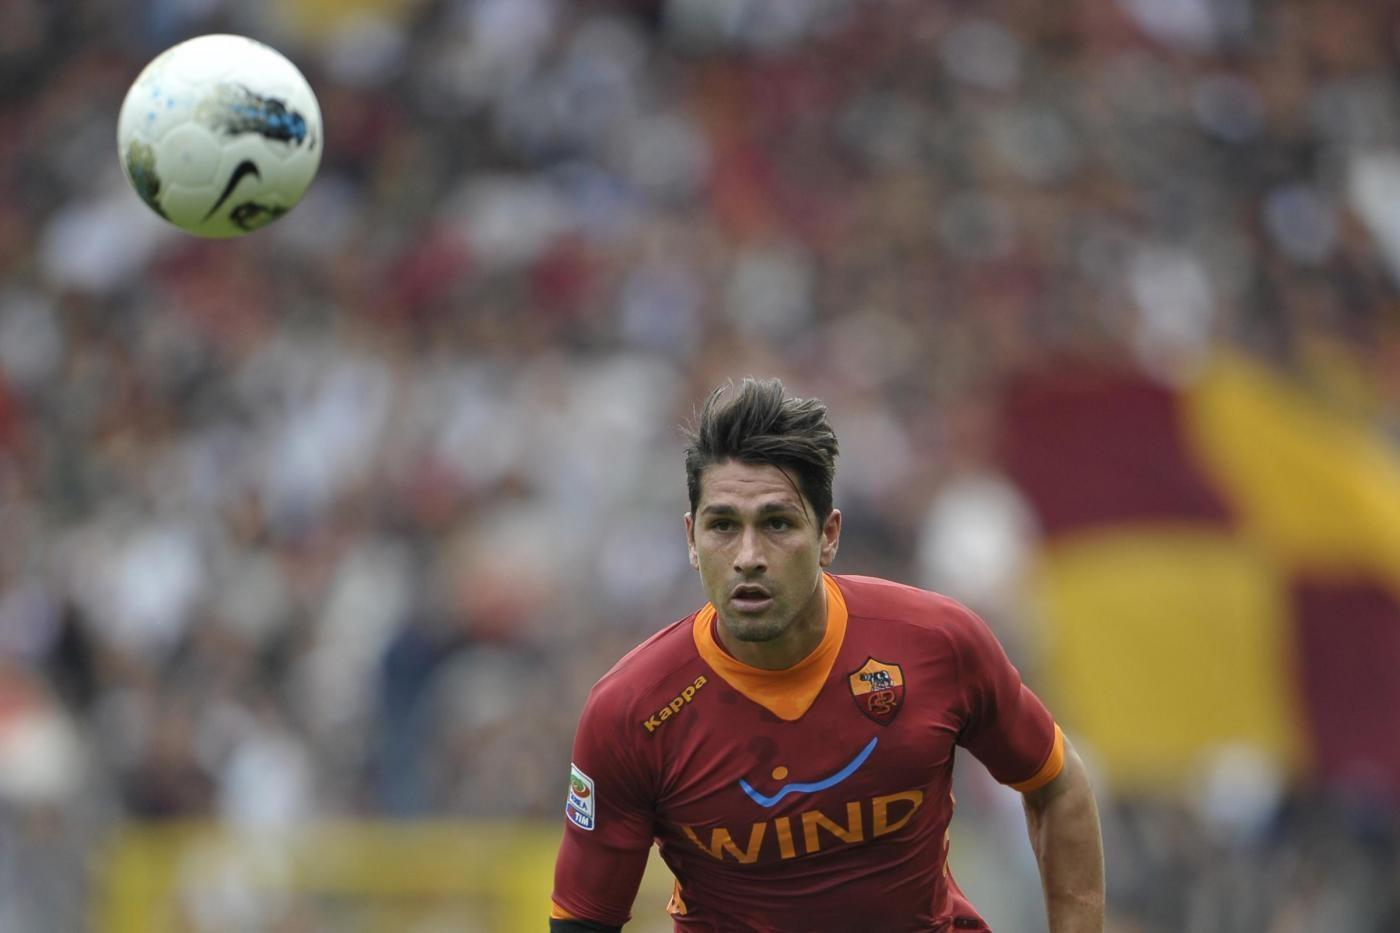 FOTO - Borriello: